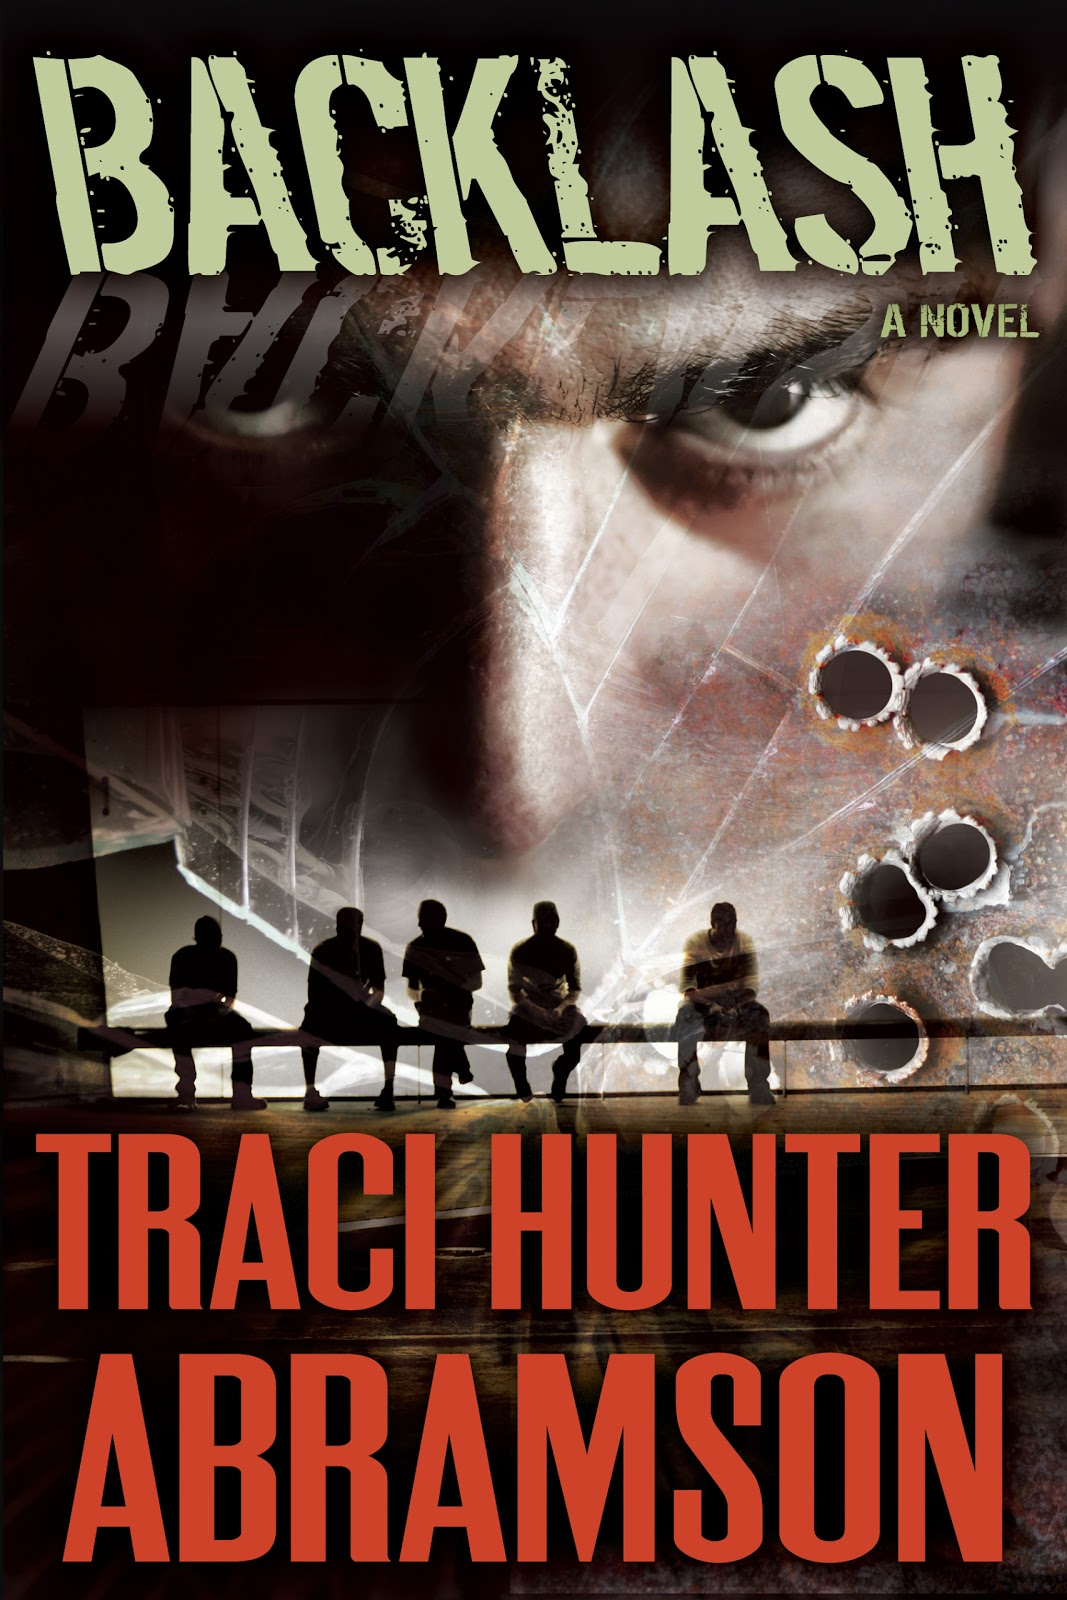 Featured Review: 'Backlash' by Brad Thor